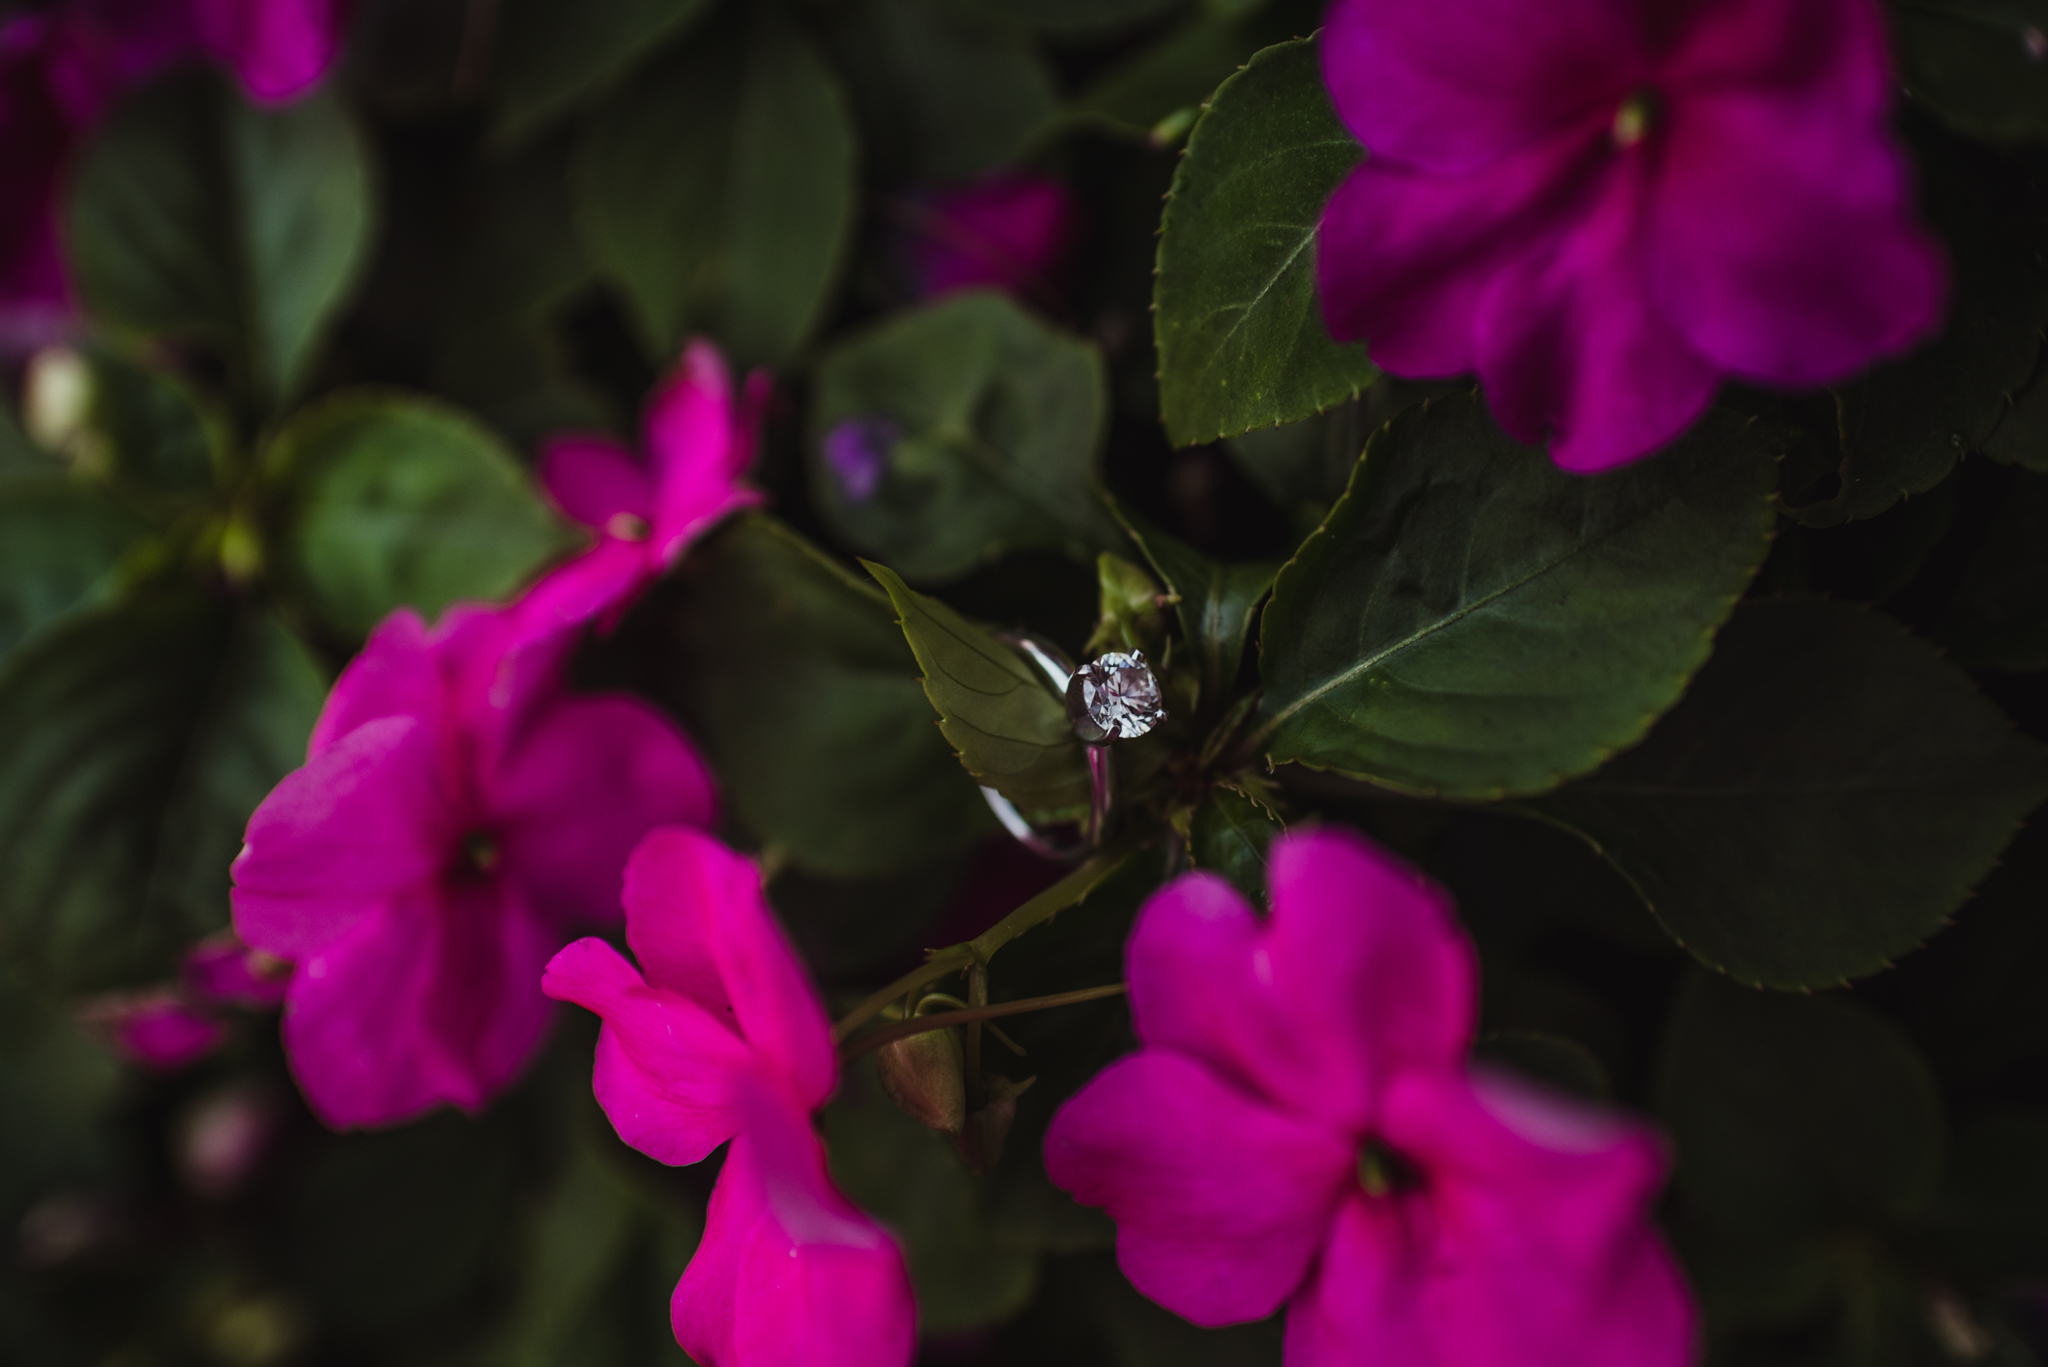 The engagement ring looked beautiful in the purple flowers at the Warren Estate for their engagement pictures with Rose Trail Images.